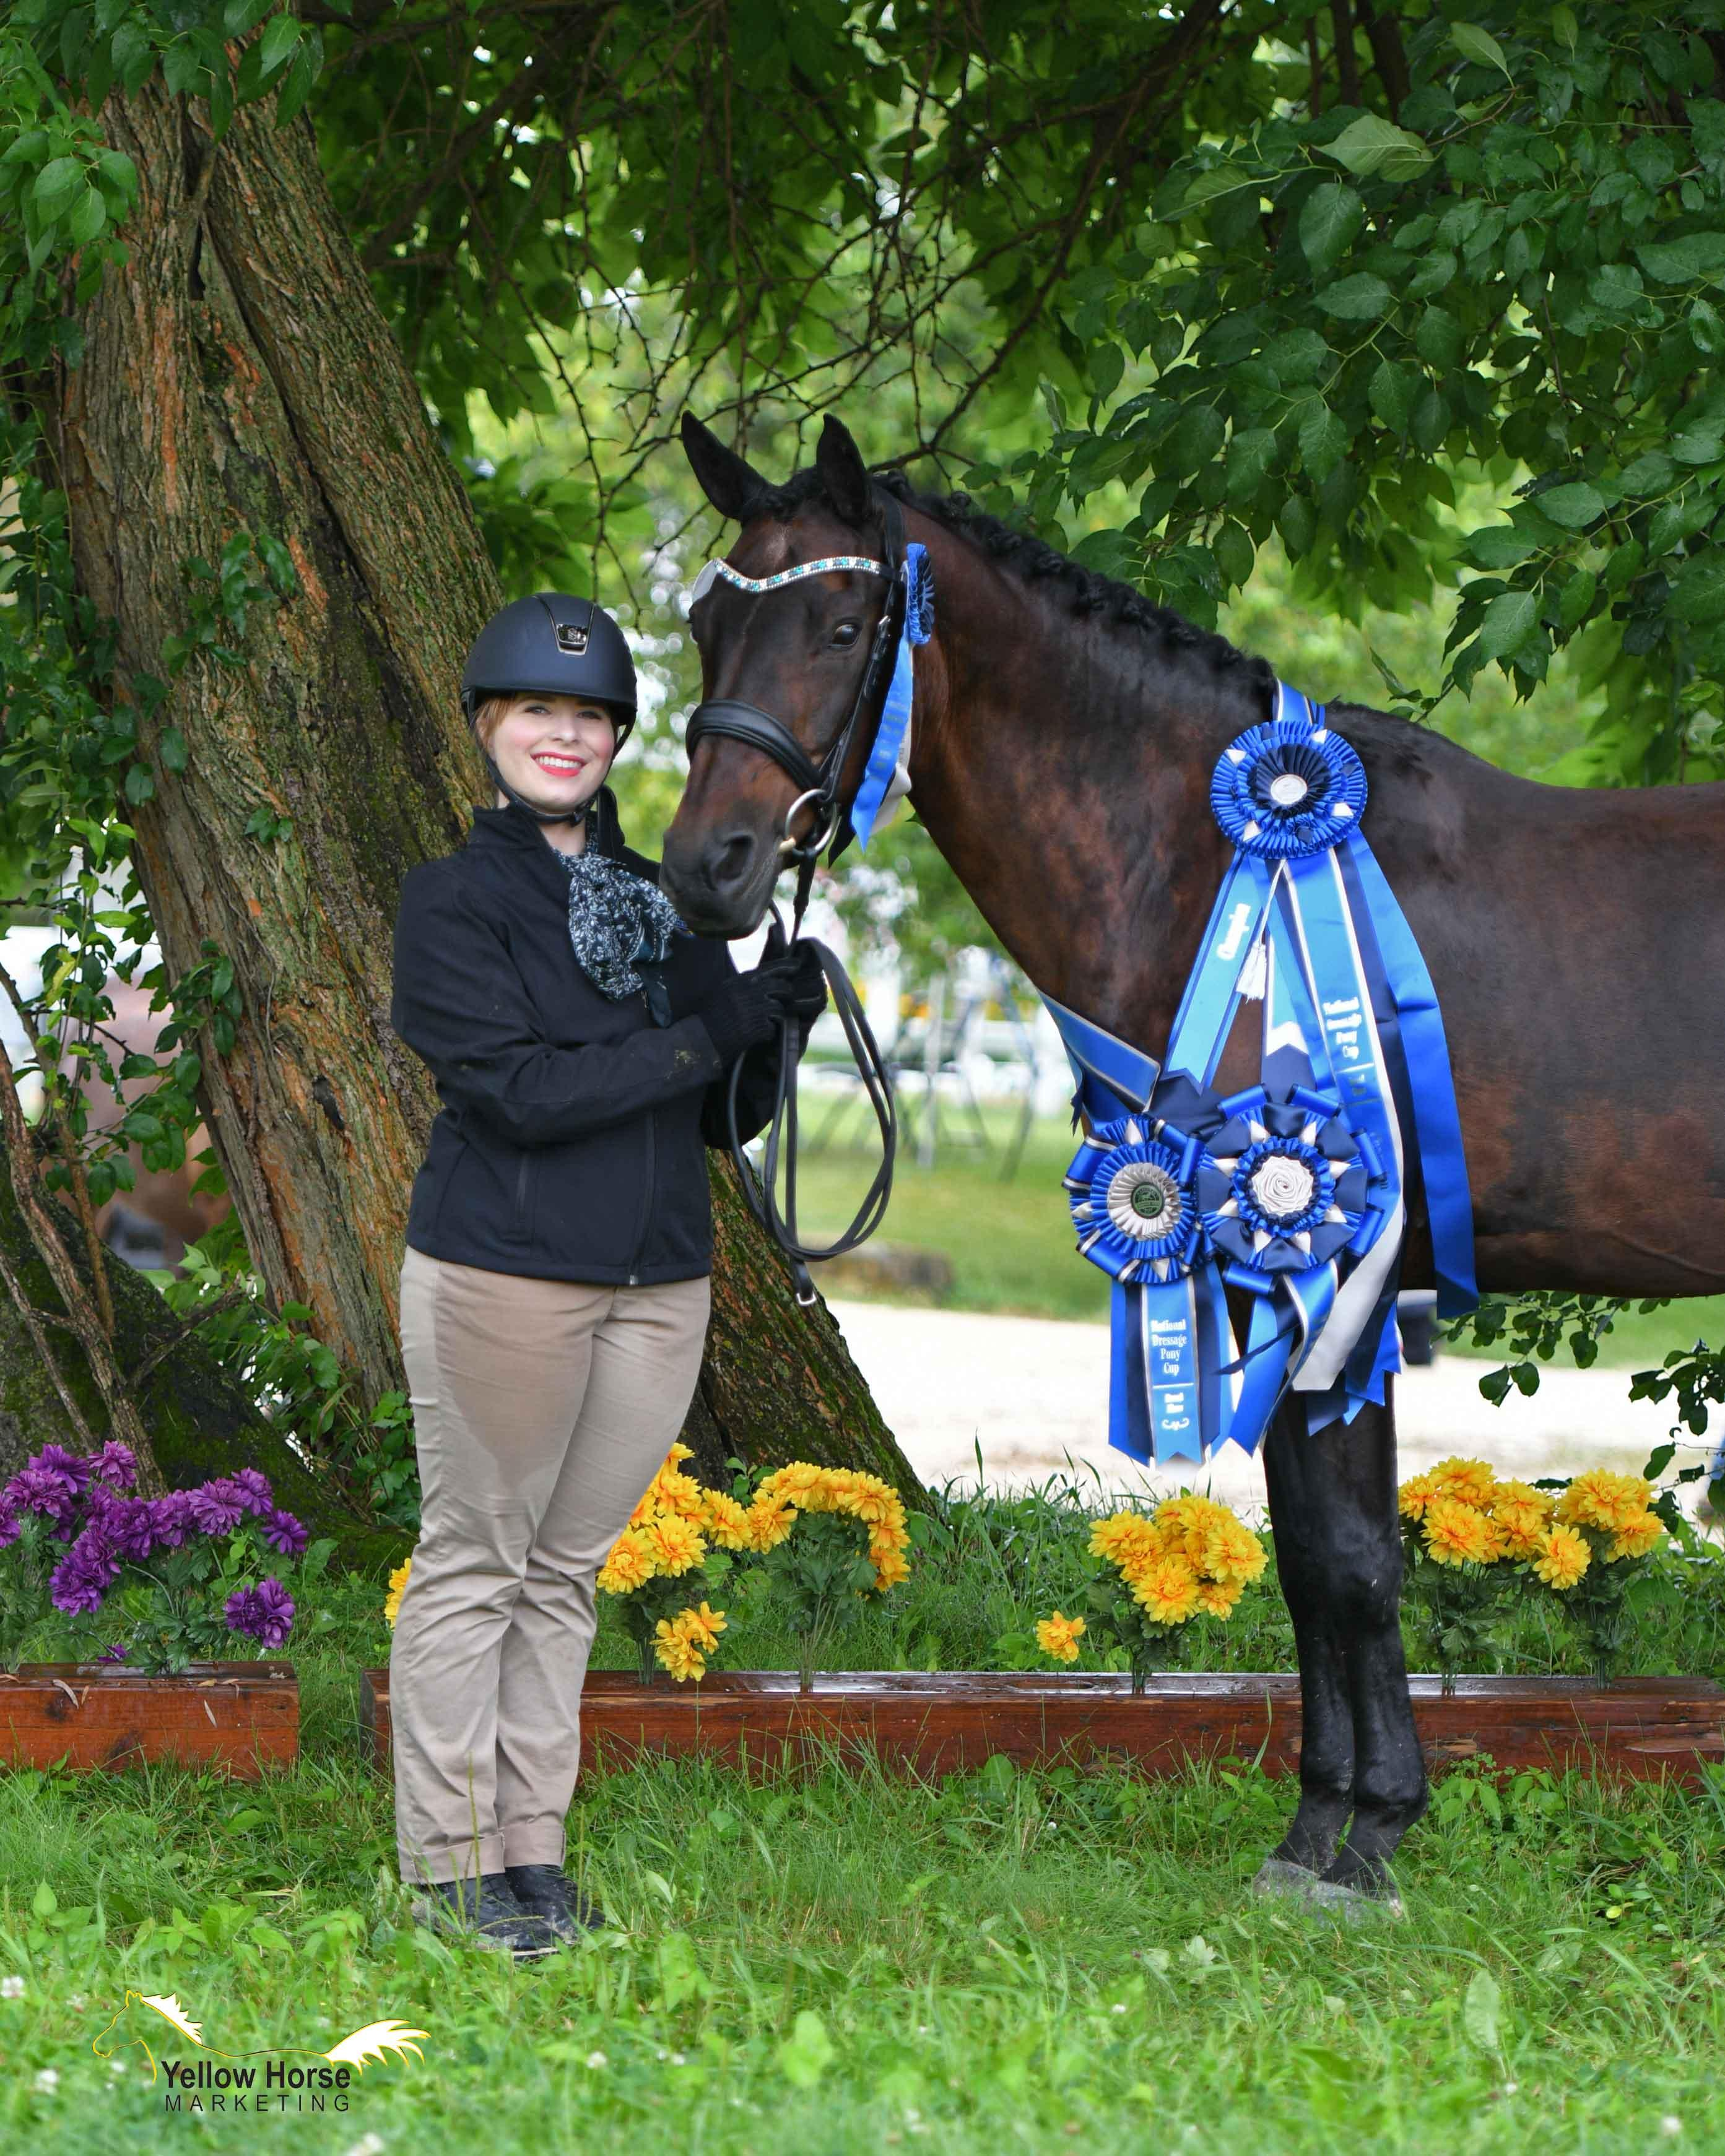 daphne_bigelows_connemara-cross_mare_kiss_me_kate_claimed_the_ndpc_grand_championship_at_the_2018_national_dressage_pony_cup_championship_shows_dressage_sport_horse_breeding_competition._.jpg